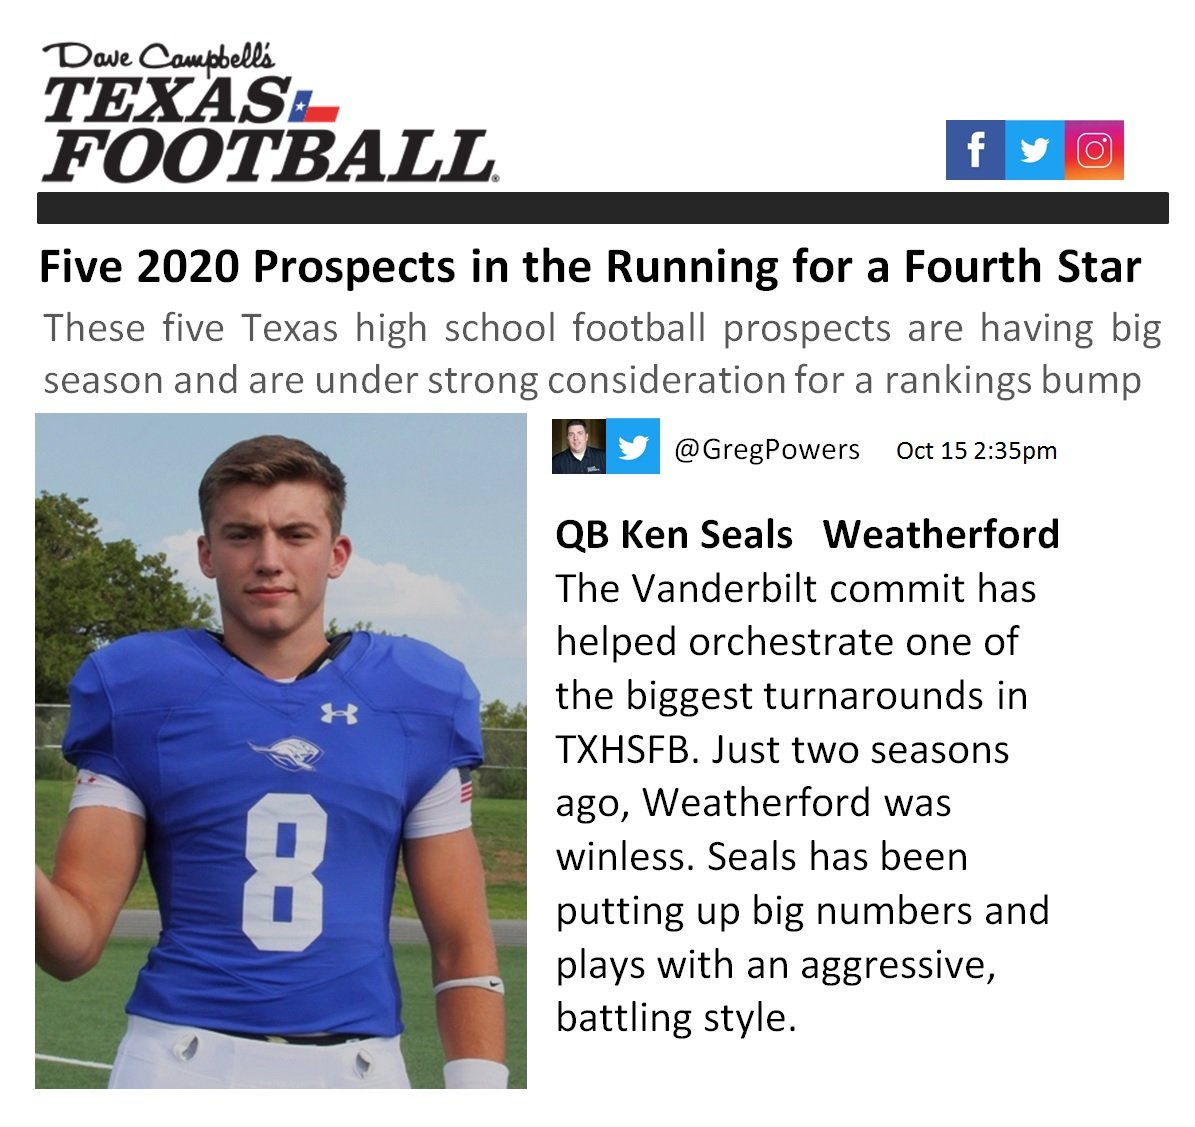 Appreciate it @GPowersScout and @dctf 🙏 Mid-Season Highlights▶️ youtube.com/watch?v=k5hIQq…